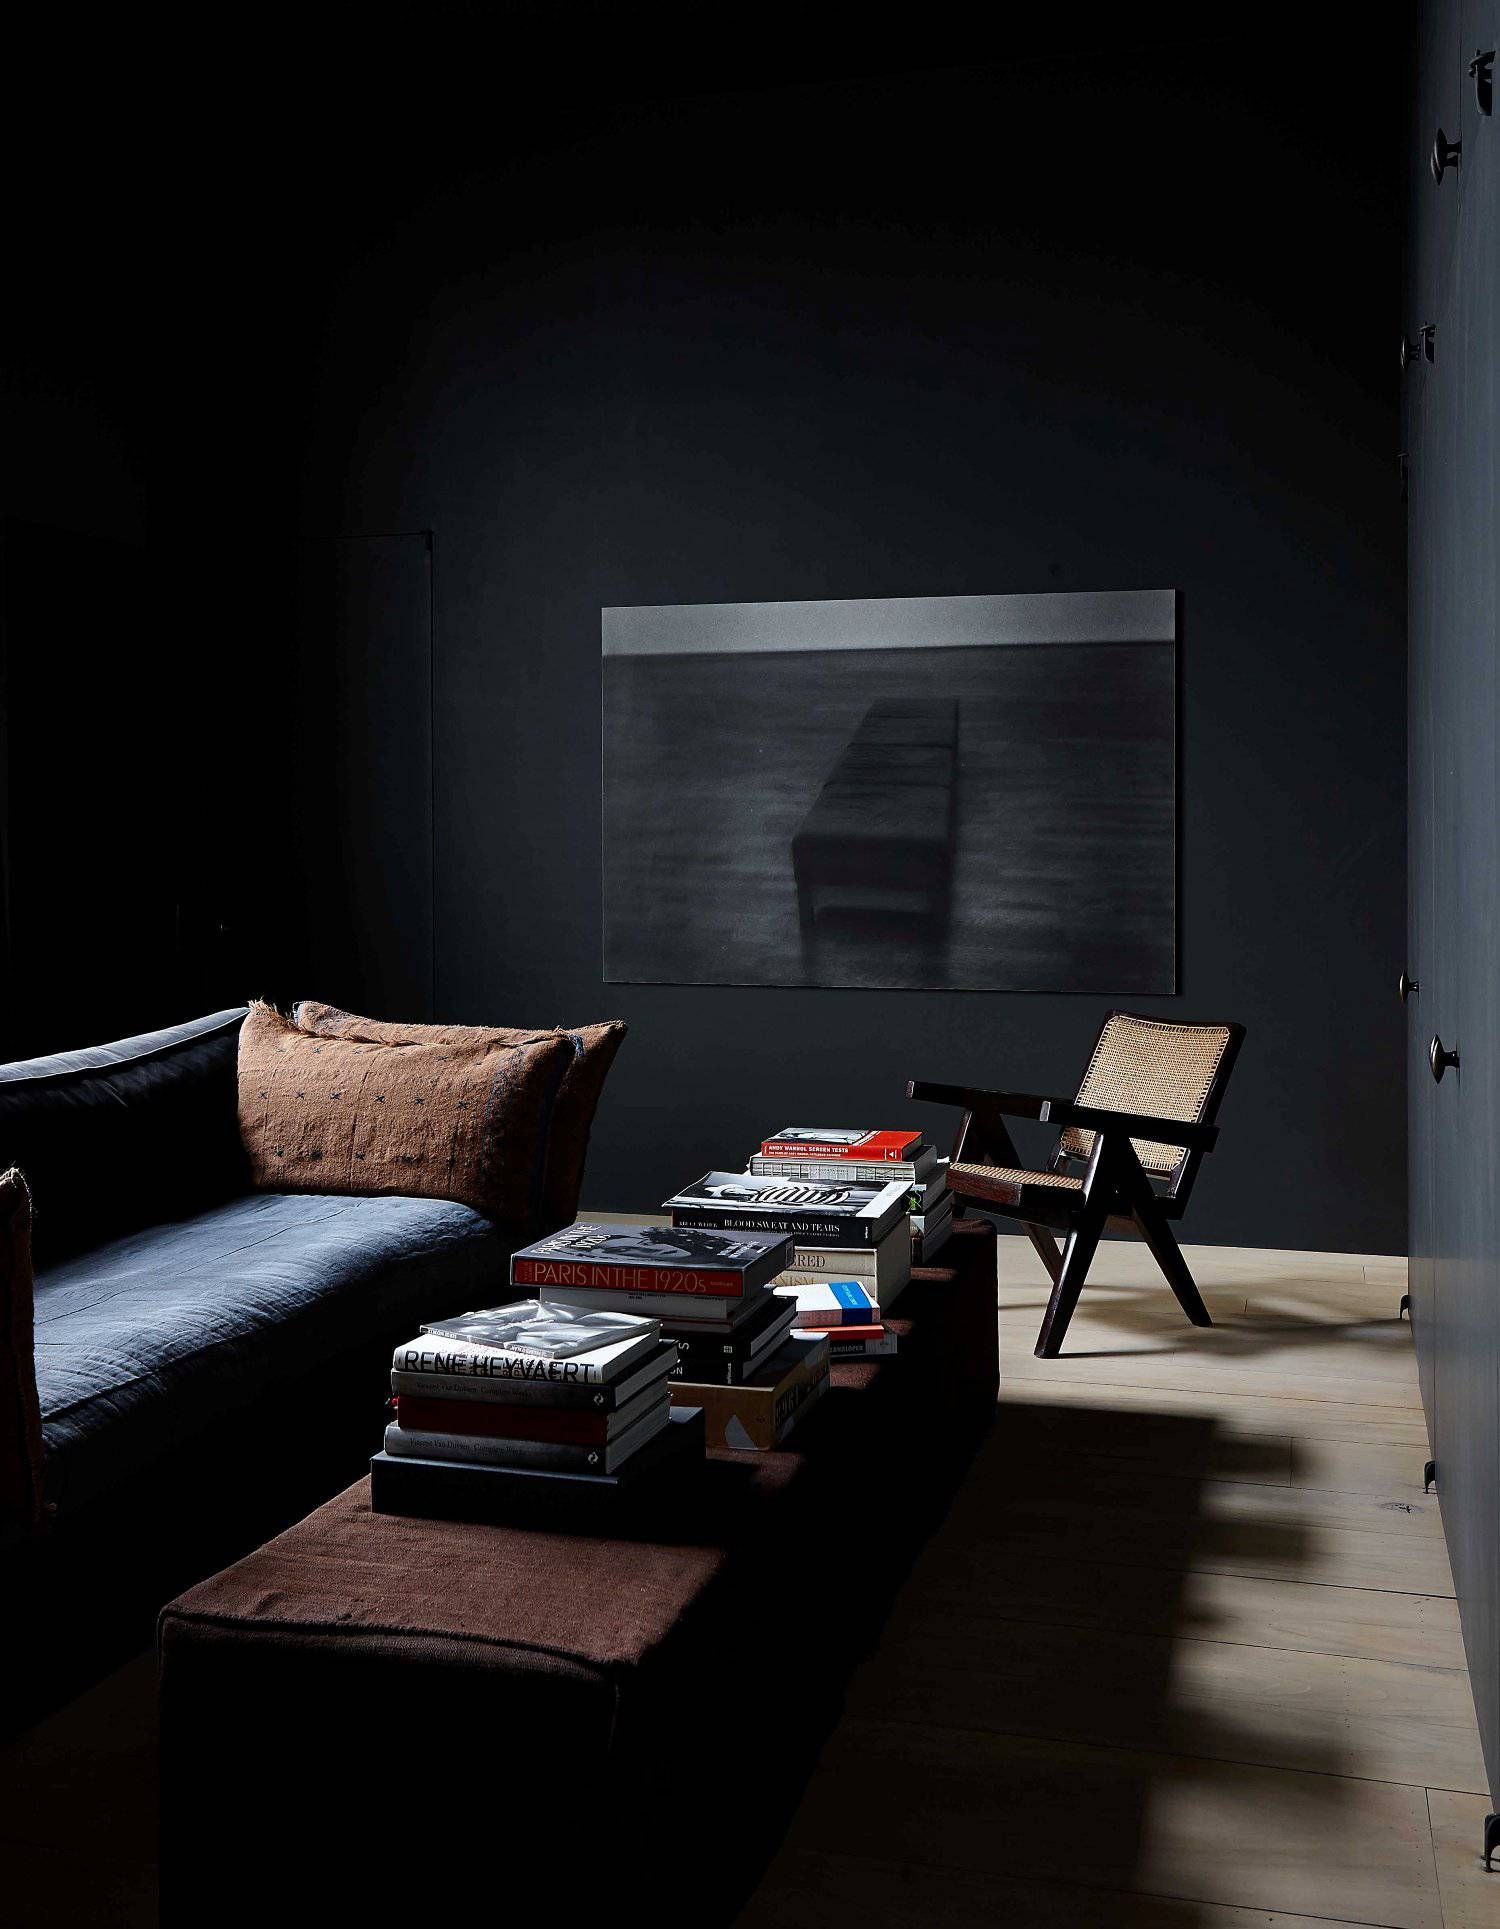 Living Room Black Furniture Decorating Ideas: Moody Living Room - Vincent Van Duysen